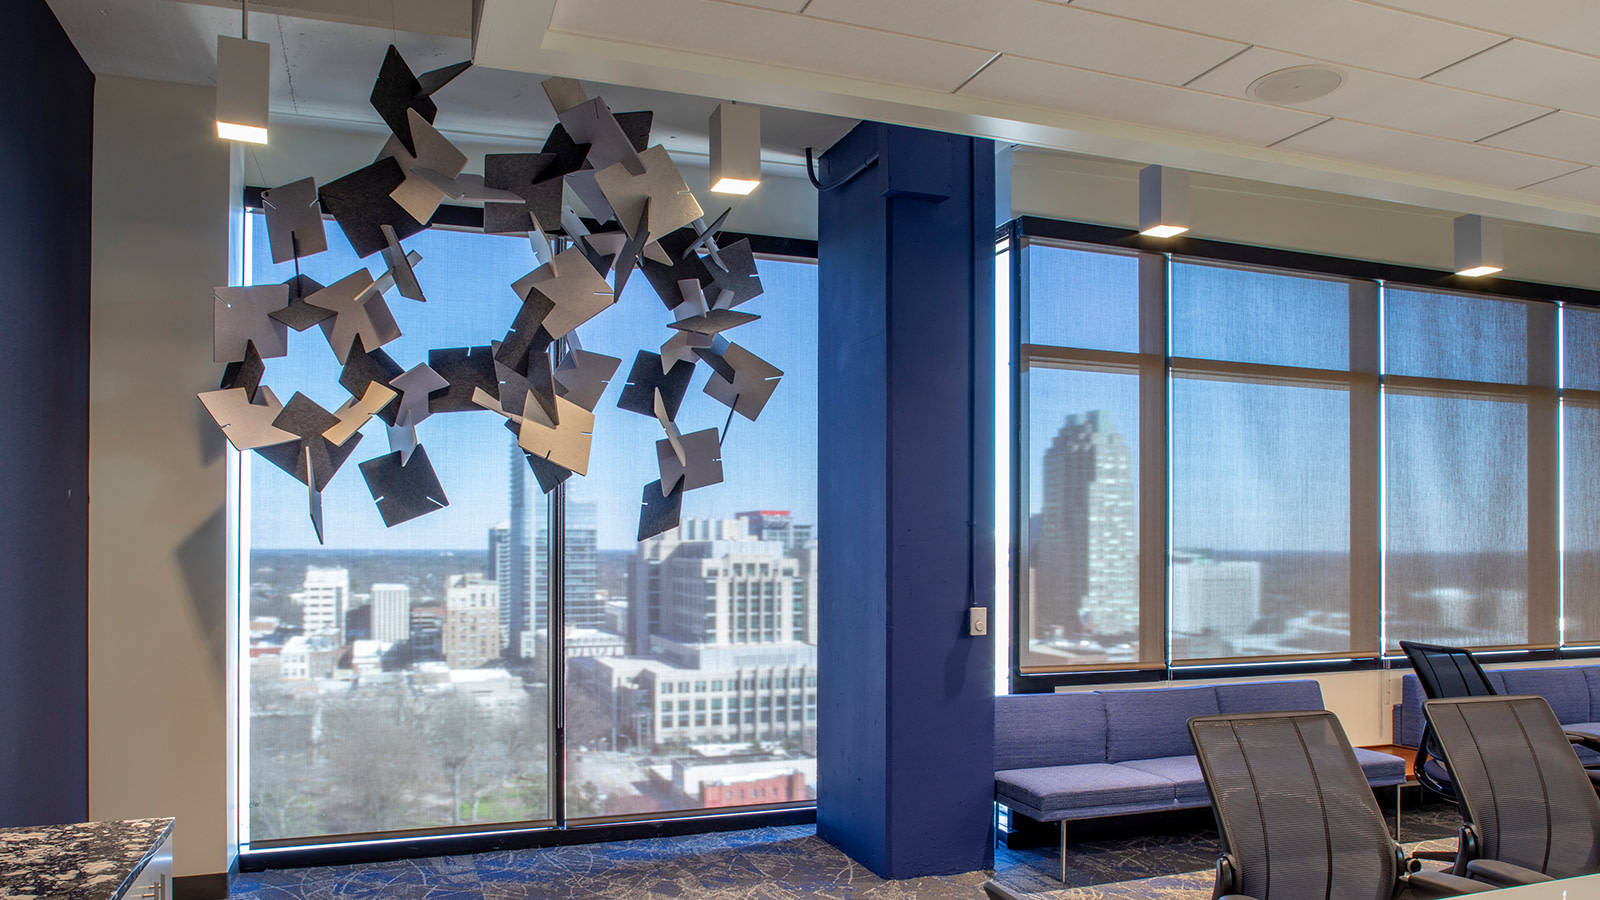 A decorative mobile with acoustic elements in the Arch Insurance headquarters